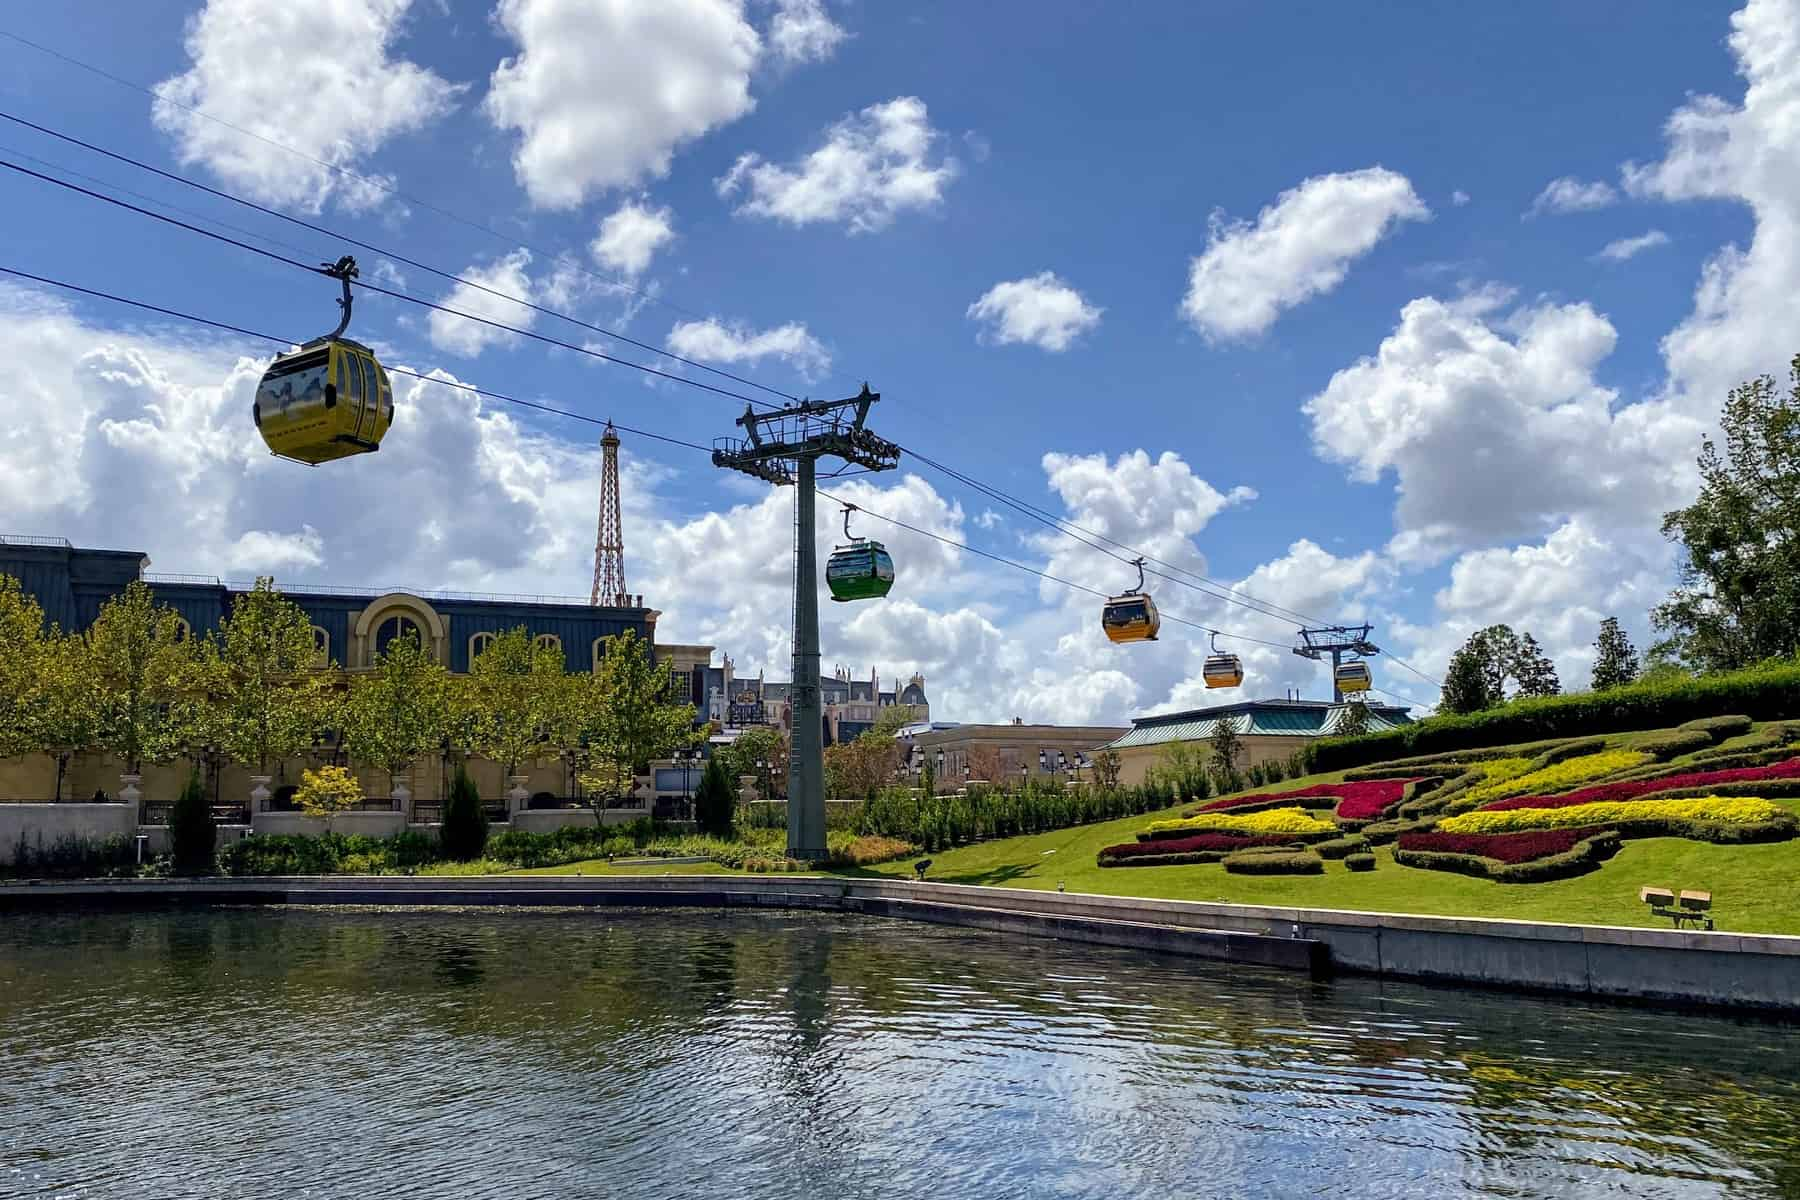 disney skyliner at epcot international gateway